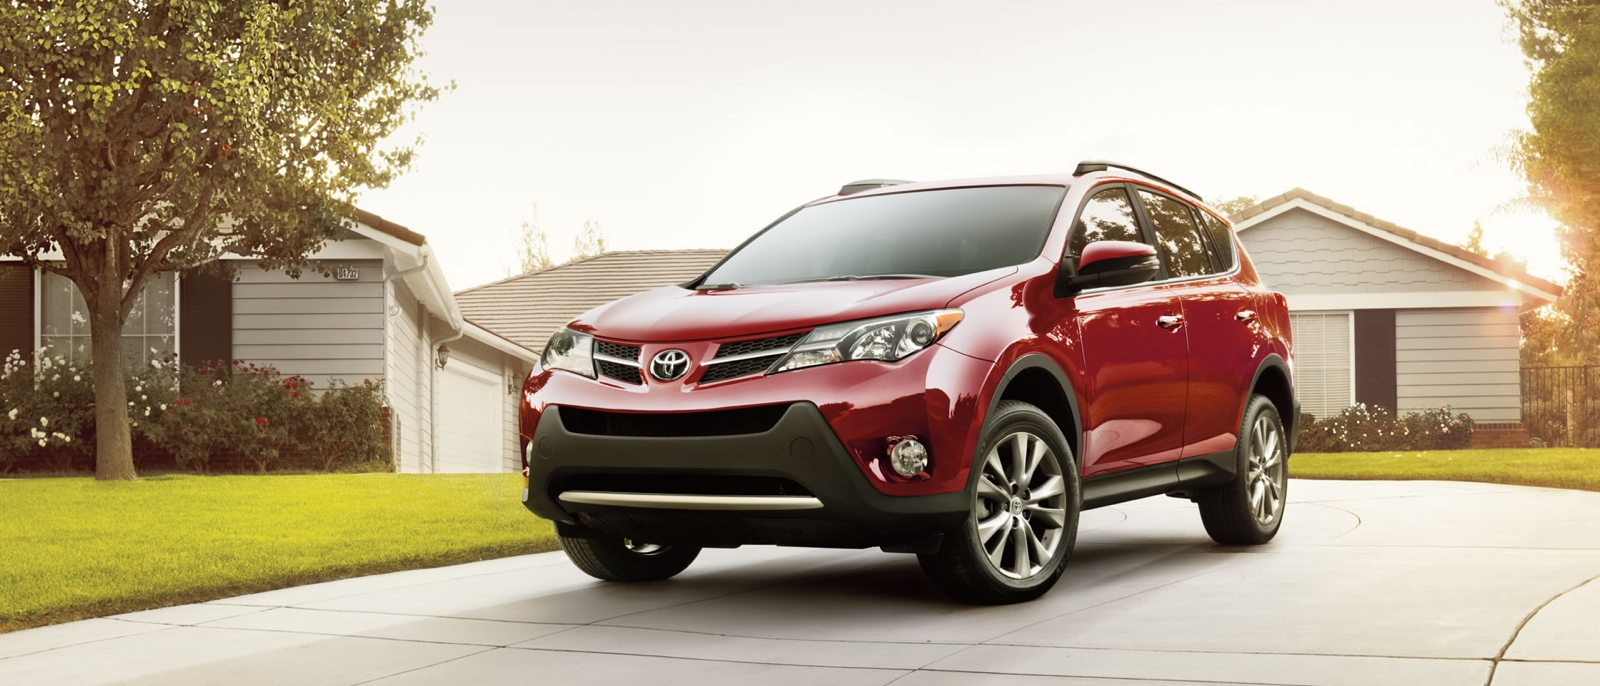 2015 toyota rav4 jupiter west palm beach earl stewart toyota. Black Bedroom Furniture Sets. Home Design Ideas